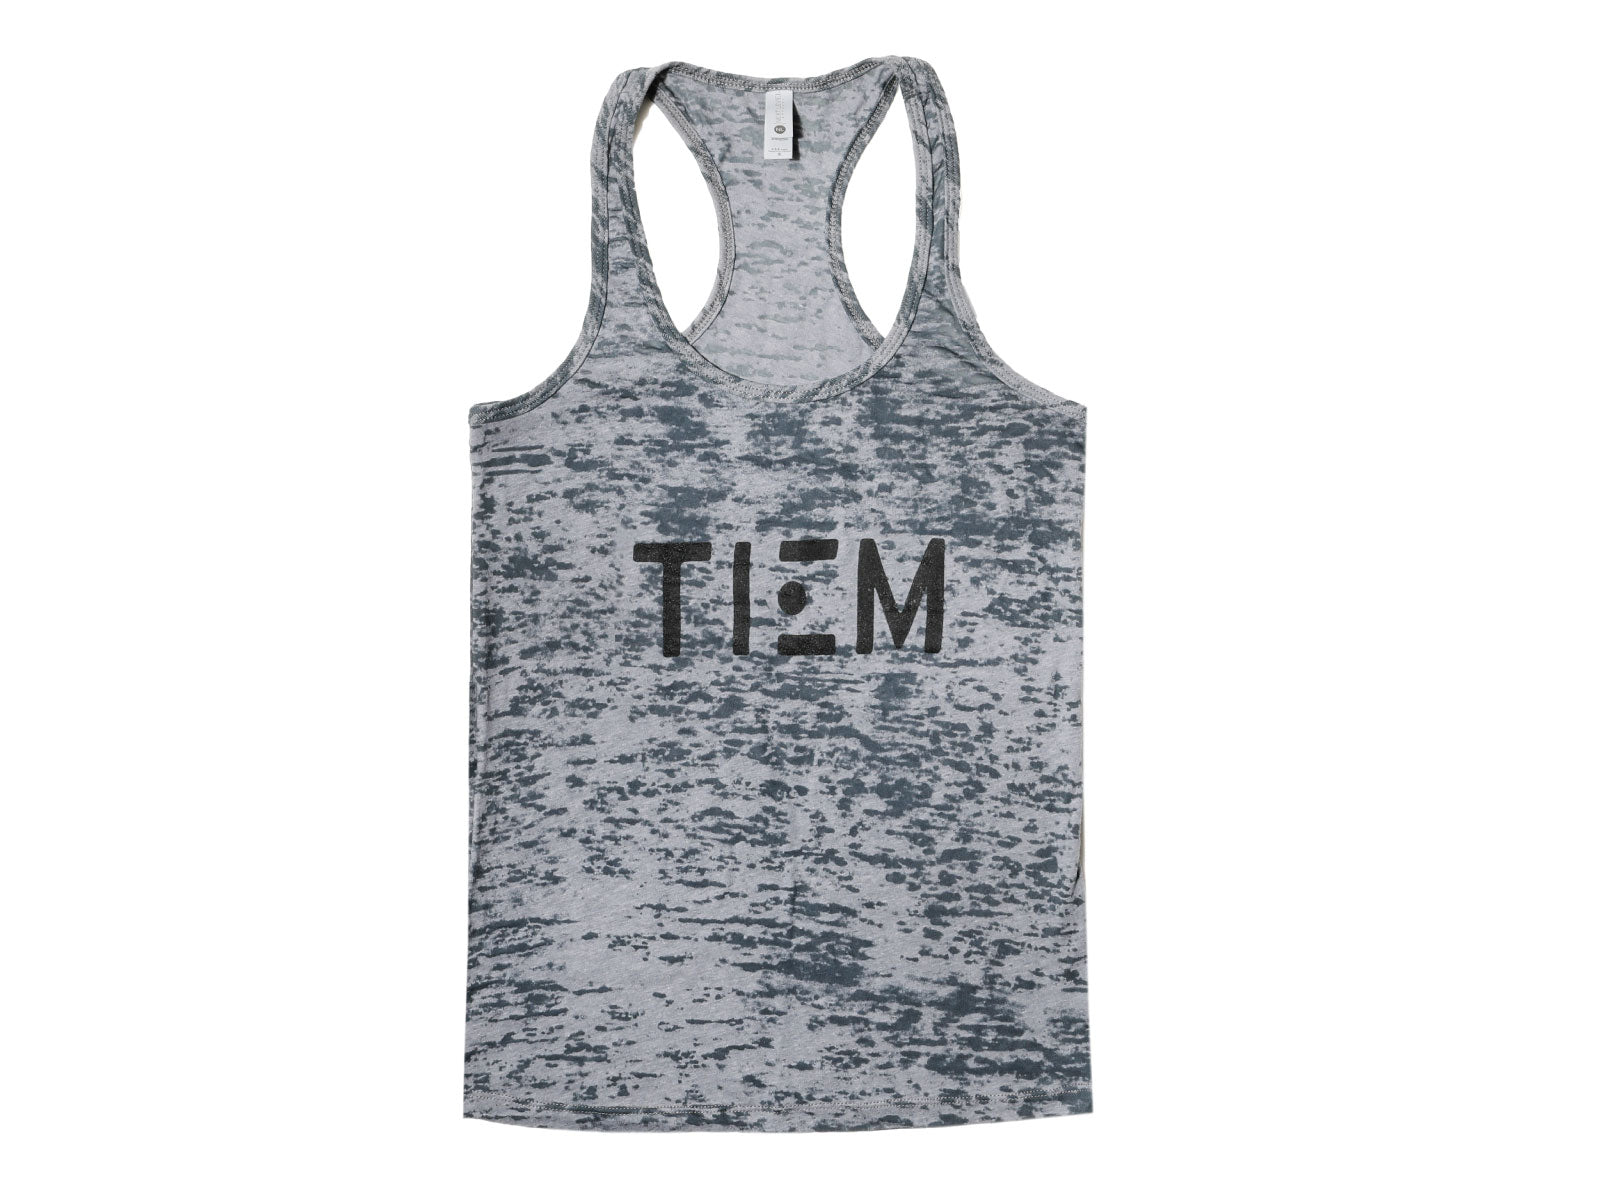 Racerback Tank Top - Gray/Black